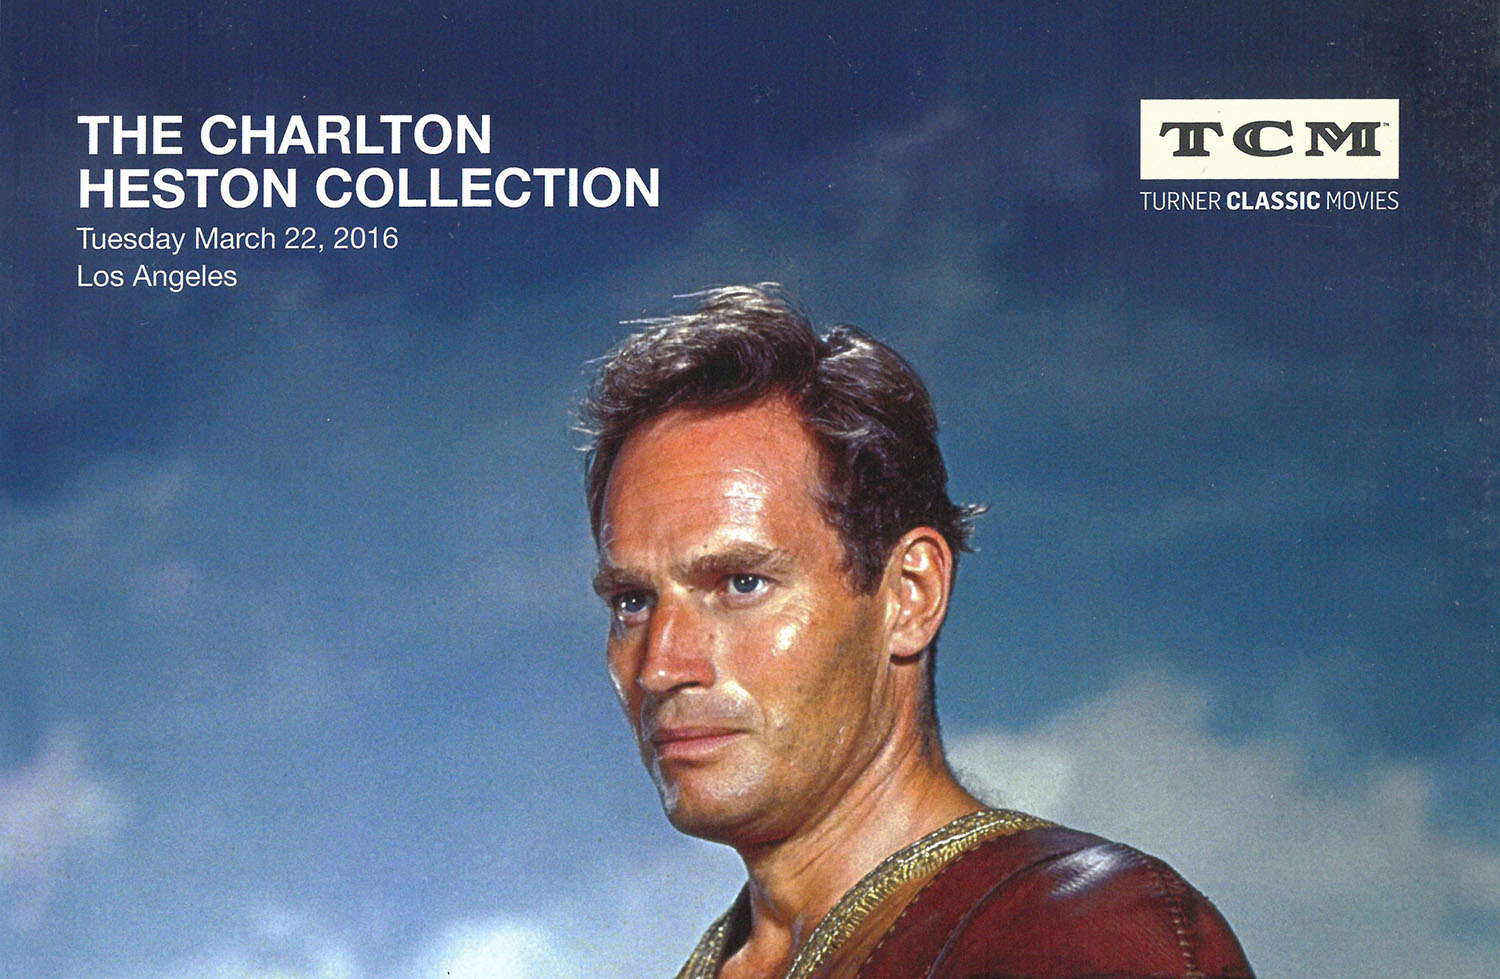 The Charlton Heston Collection